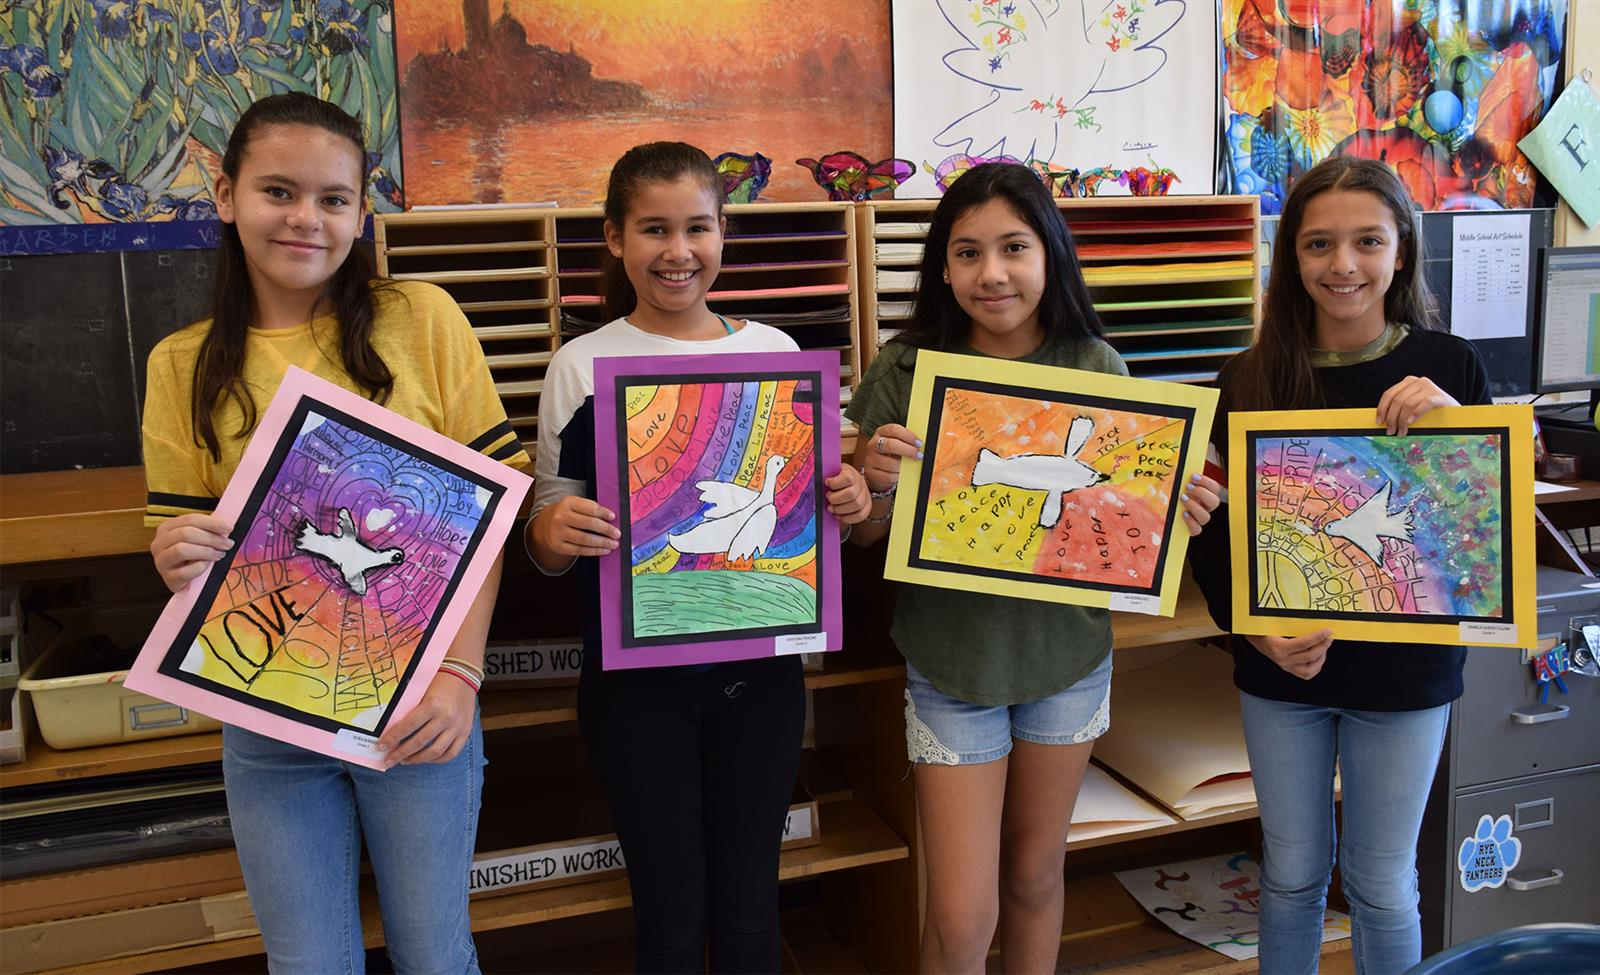 Students Spread Kindness With Peace Dove Paintings photo